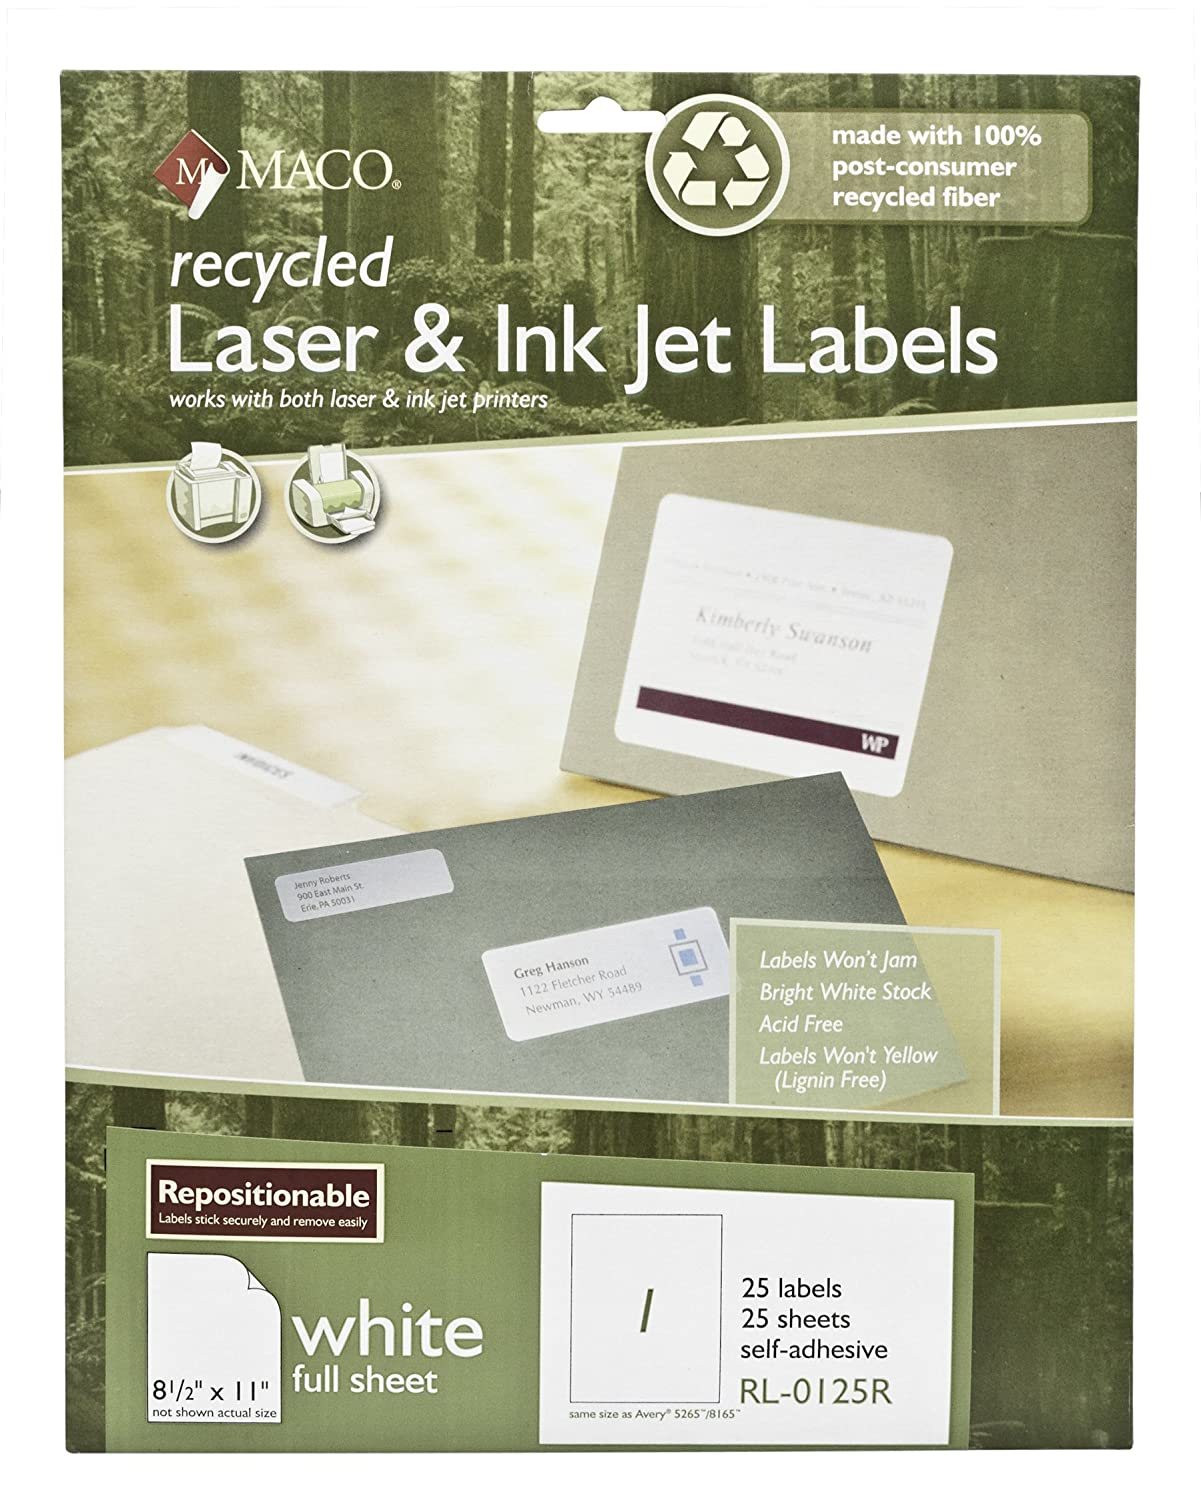 MACO Recycled Repositionable Laser/Ink Jet White Full Sheet Labels, 8-1/2 x 11 Inches, 1 Per Sheet, 100 Per Box (RL-0125R) Chartpak Inc.